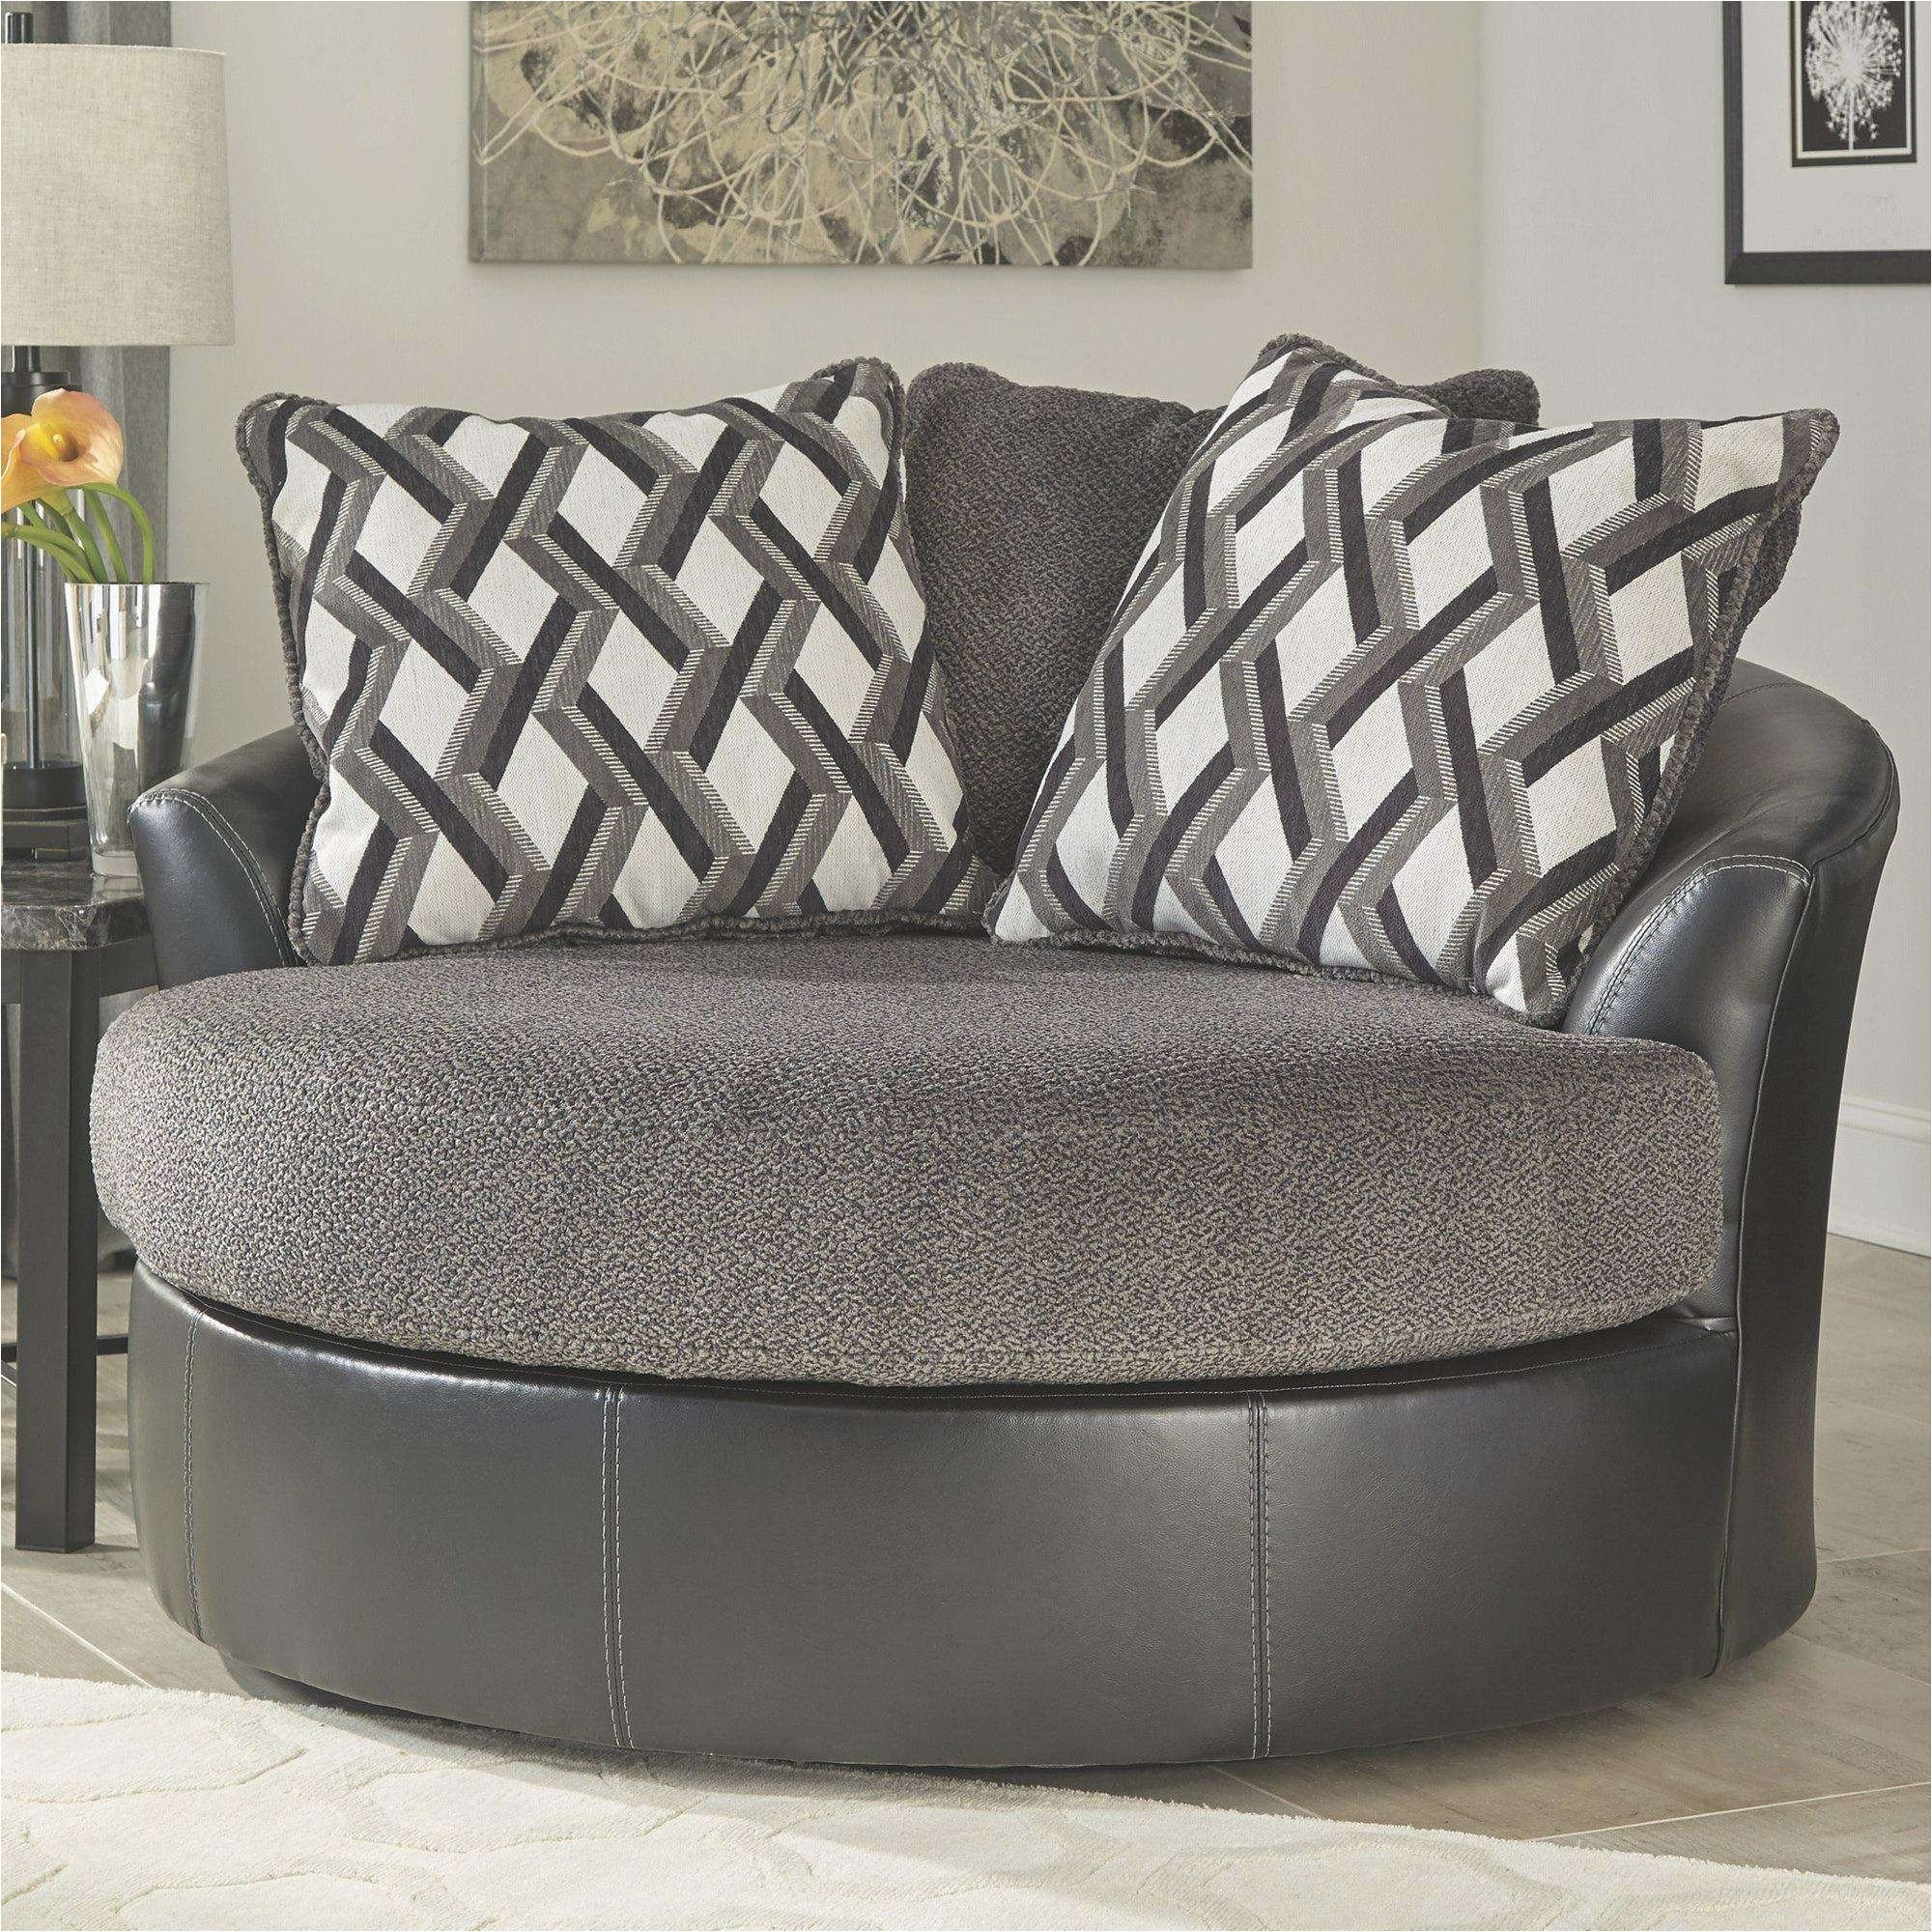 Furniture Stores Joplin Mo 35 Unique Of Wayfair Furniture sofas Pics Home Furniture Ideas